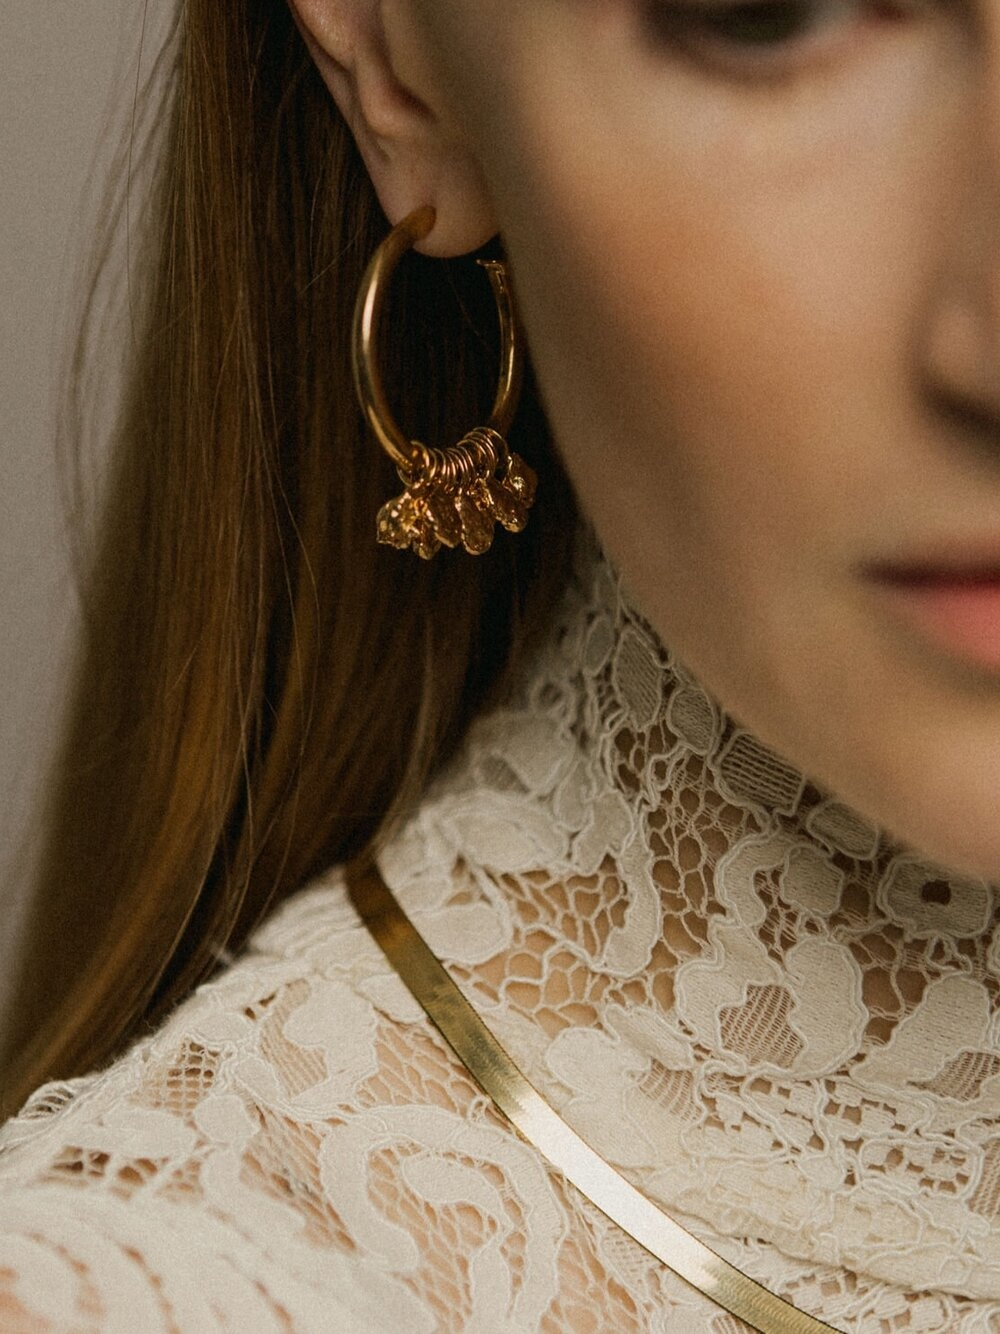 Pamela Card Earrings - Serapis - 24K Gold Plated